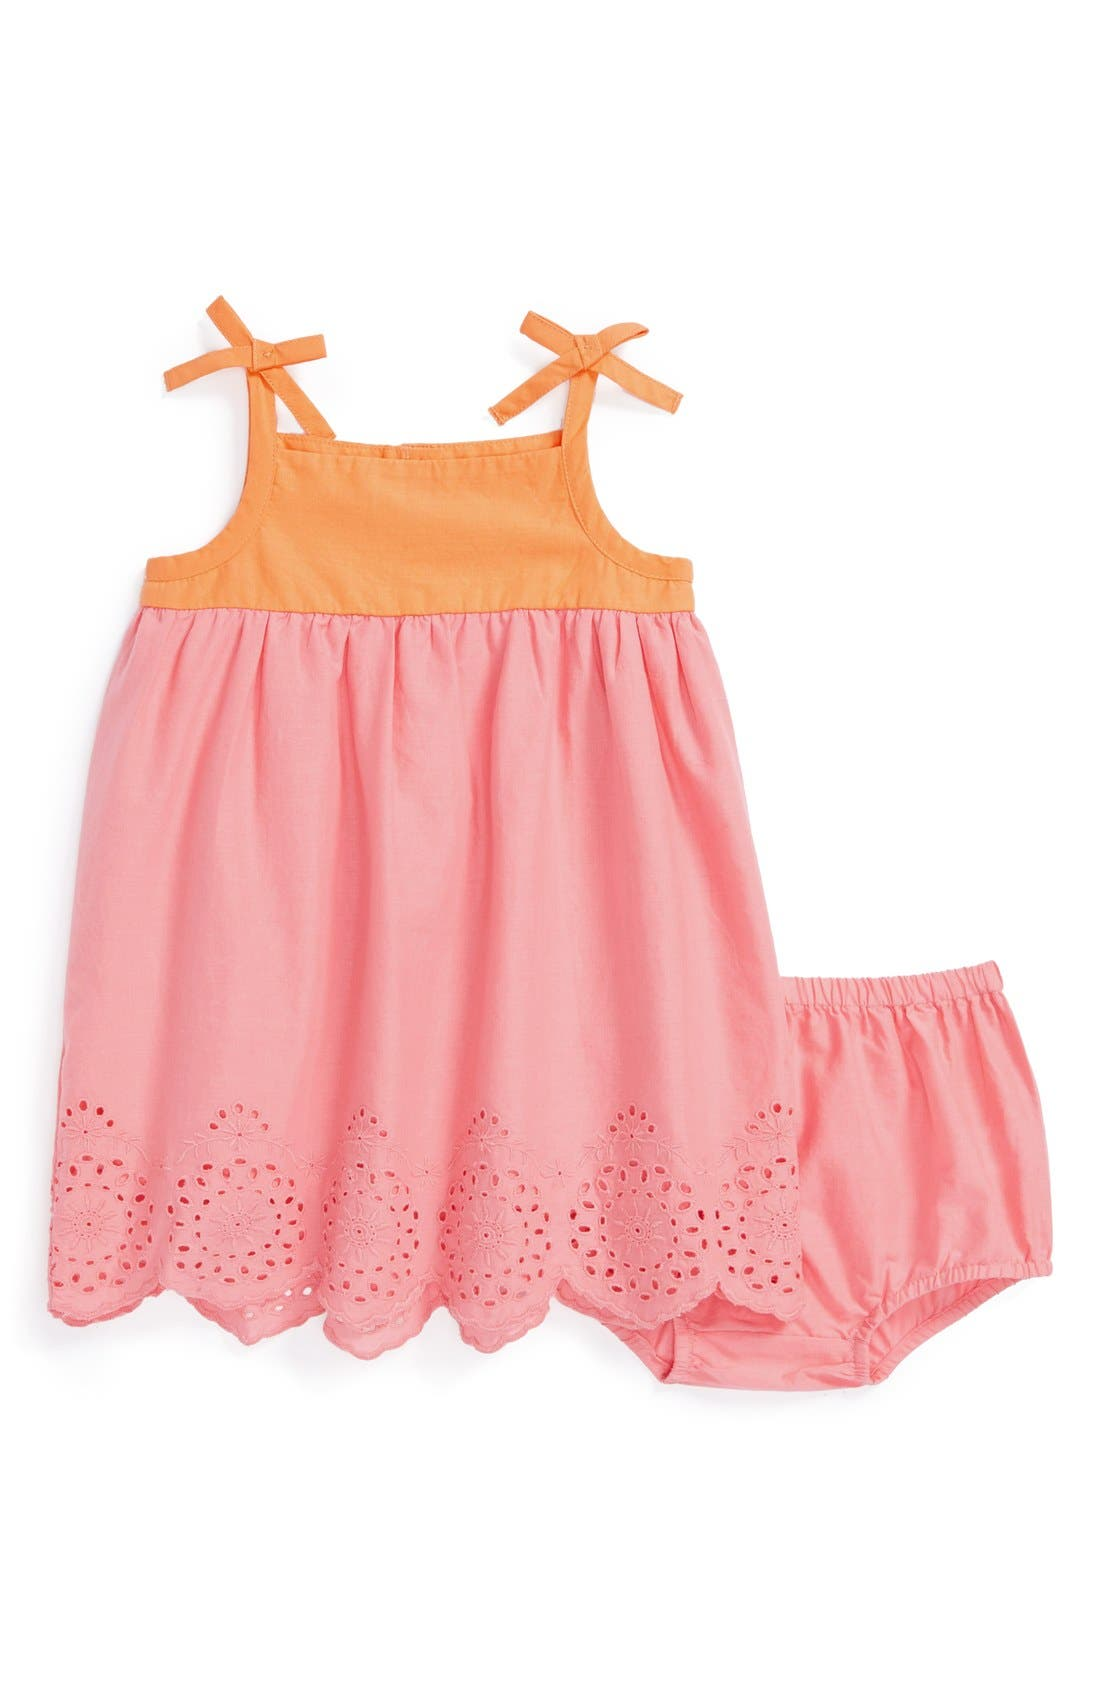 Main Image - Tucker + Tate Sleeveless Sundress & Bloomers (Baby Girls)